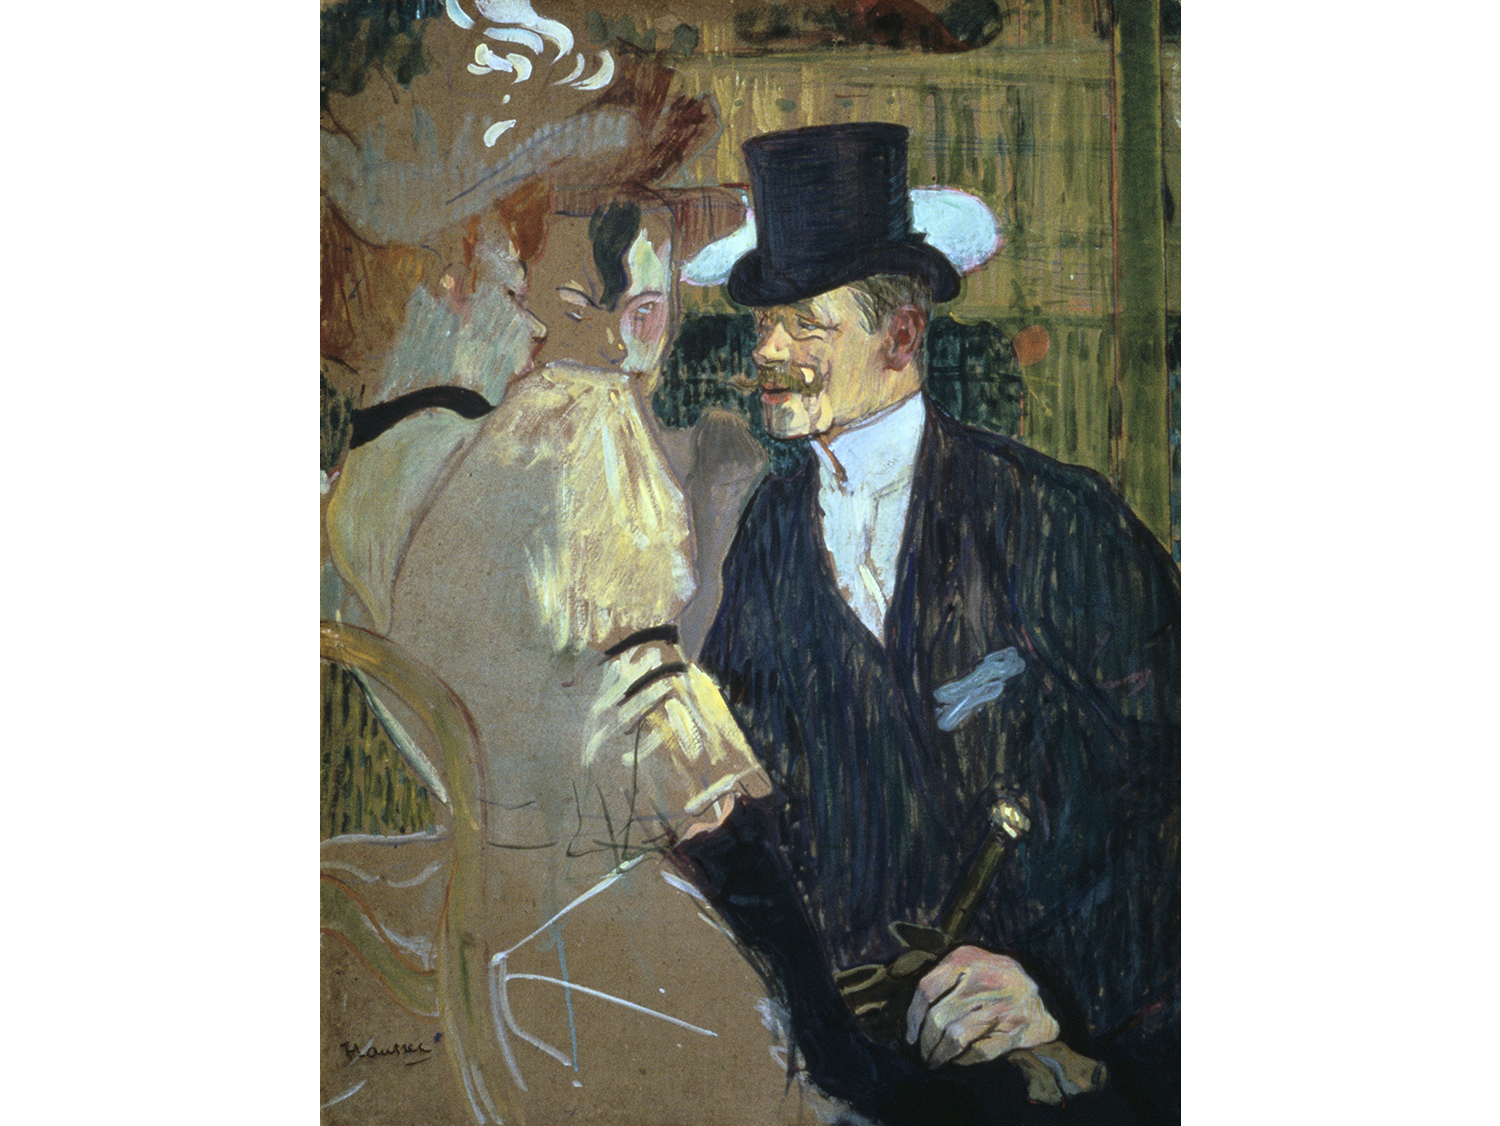 Henri de Toulouse-Lautrec, The Englishman (William Tom Warrener, 1861–1934) at the Moulin Rouge, 1892